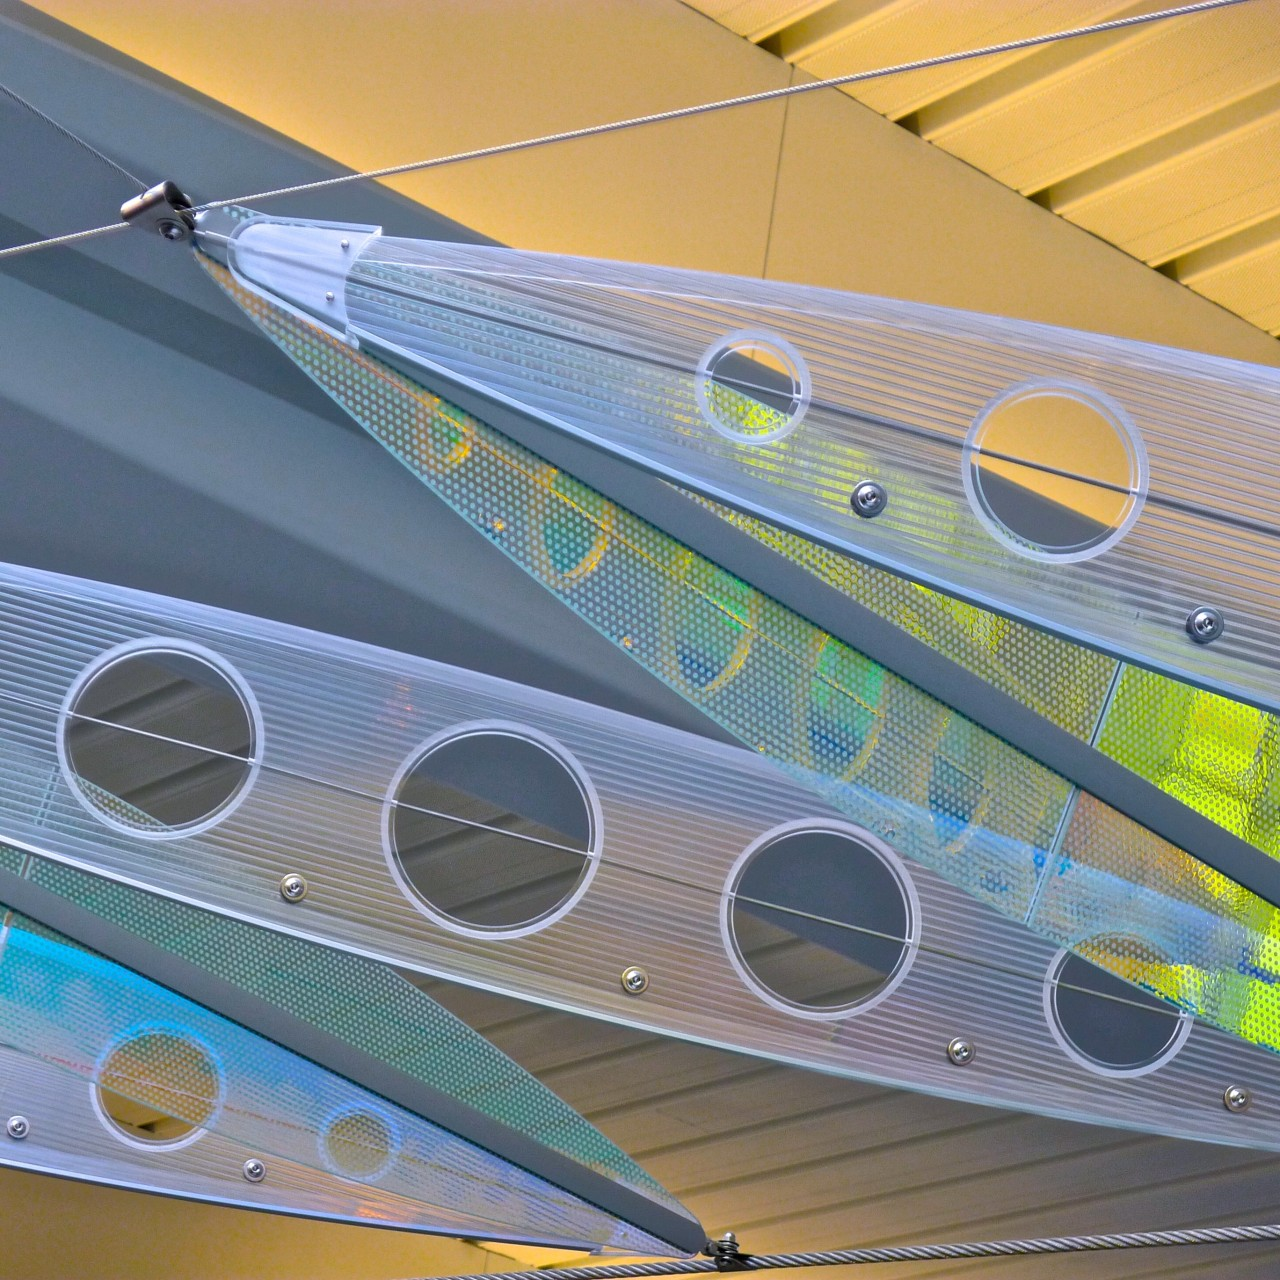 Showing Ed Carpenter's Wichita Dwight D. Eisenhower National Airport signature sculpture Aloft close up of alternating colorful laminated safety dichroic glass and cellular polycarbonate. / image 16